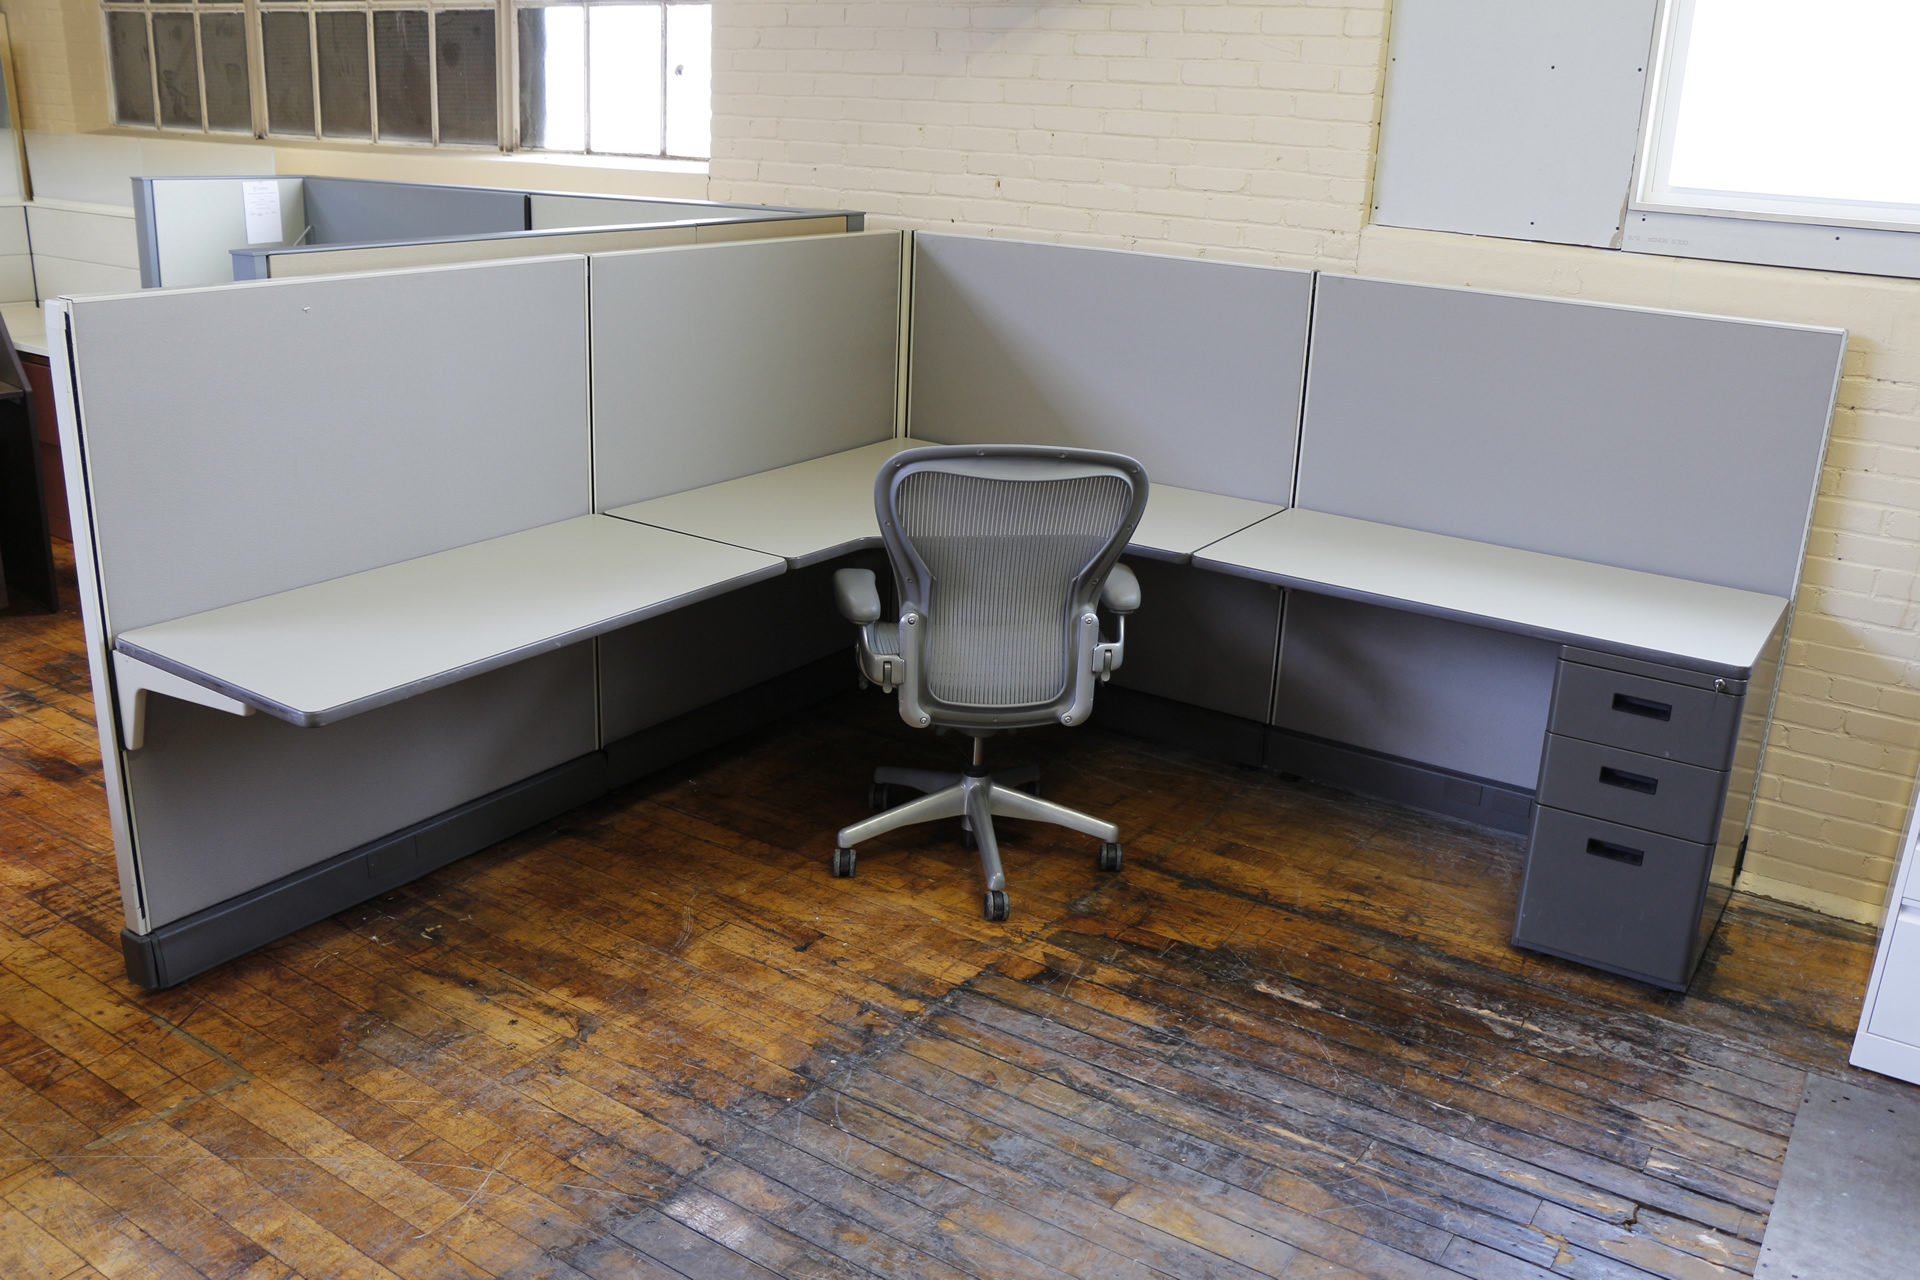 Herman Miller AO2 8×8 Cubicles